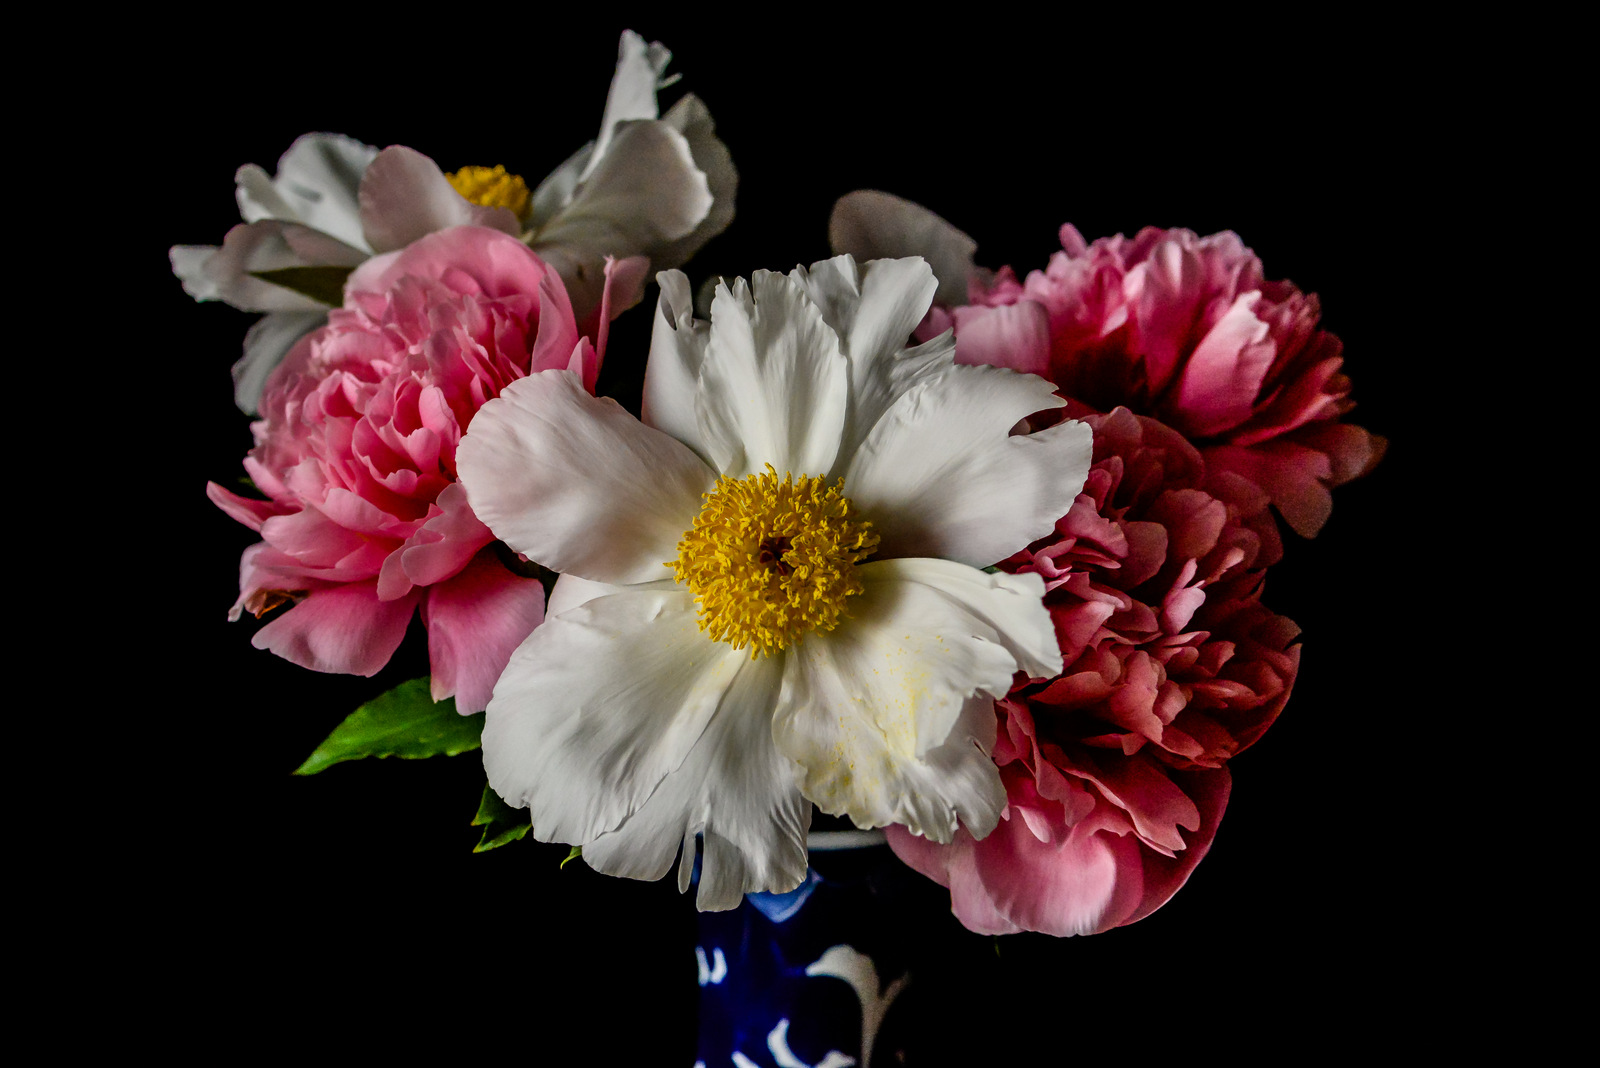 peonies photo by shawna lemay